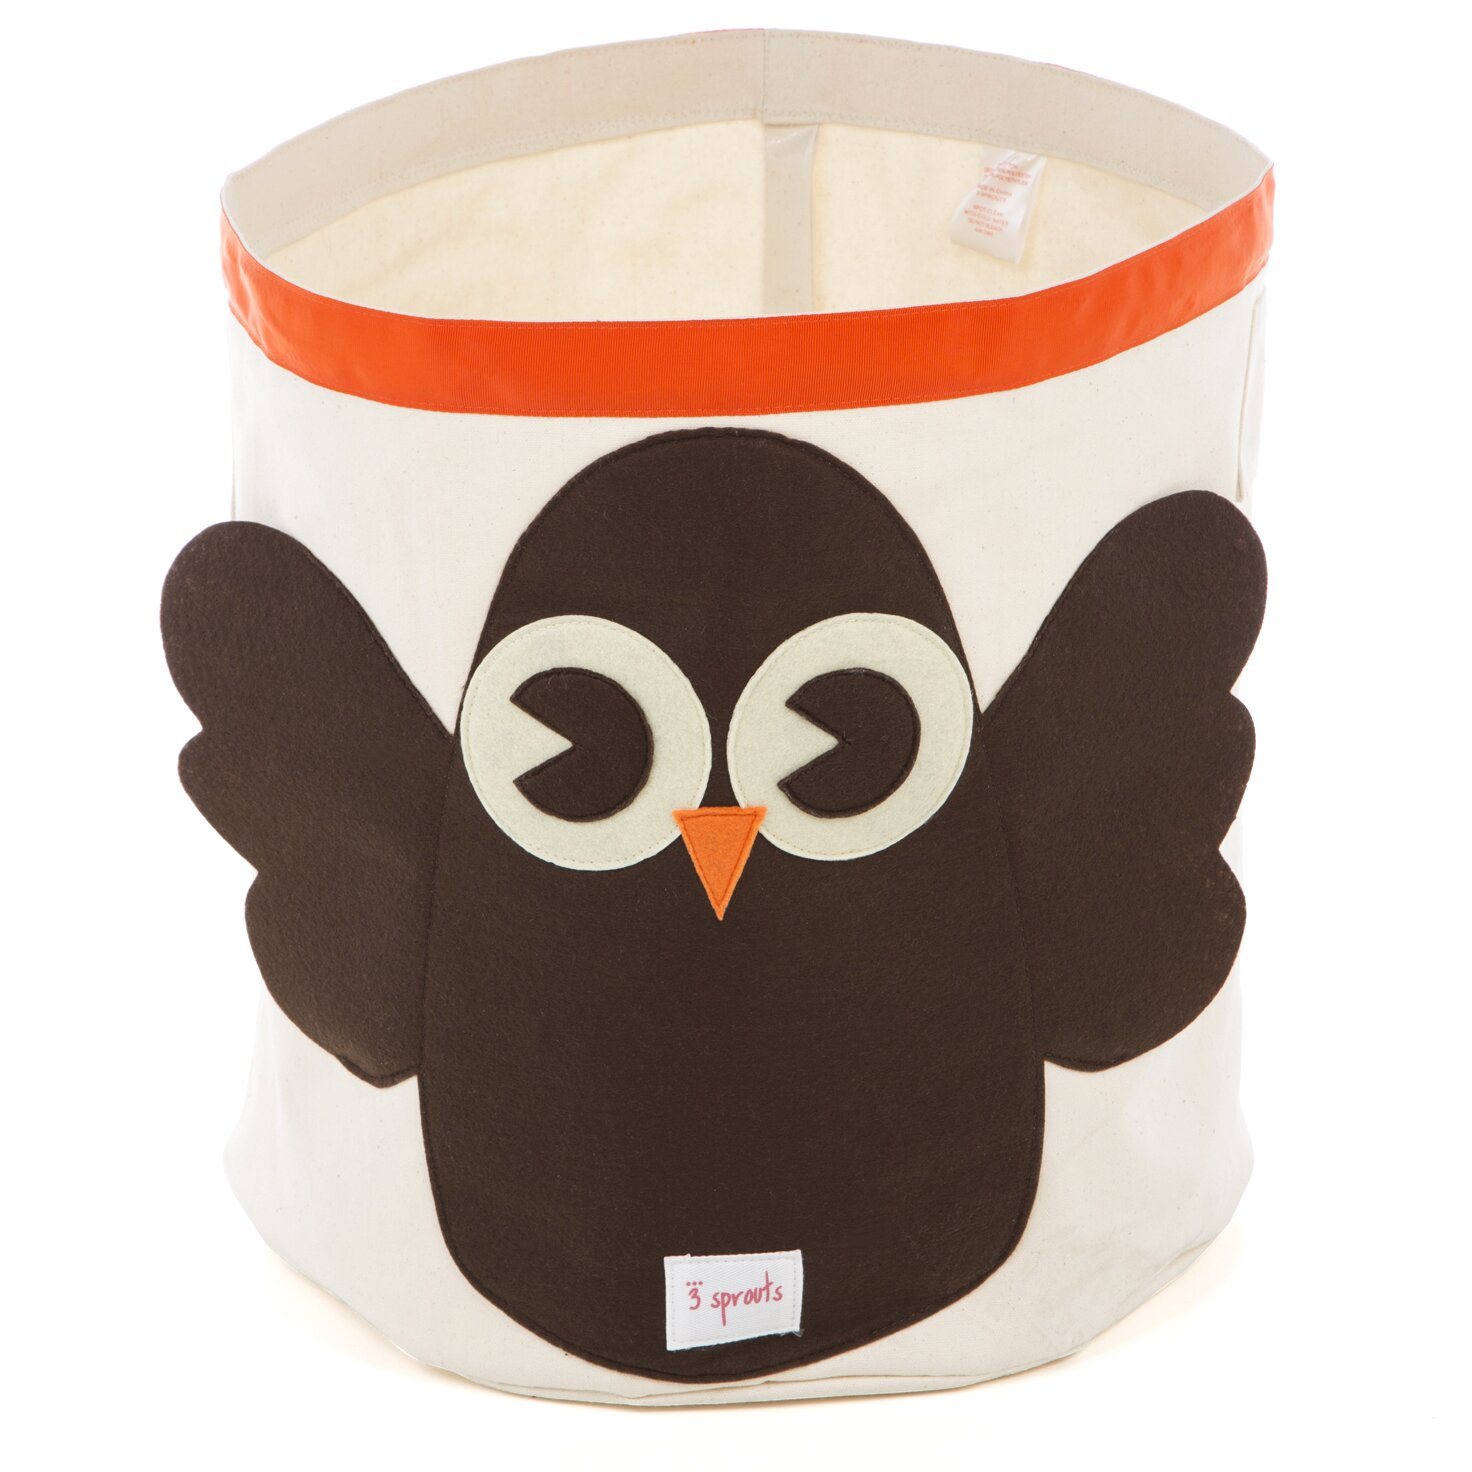 100 owl kitchen canisters design of canisters for kitchen owl kitchen canisters owl kitchen canisters kitchen canister sets anchor hocking